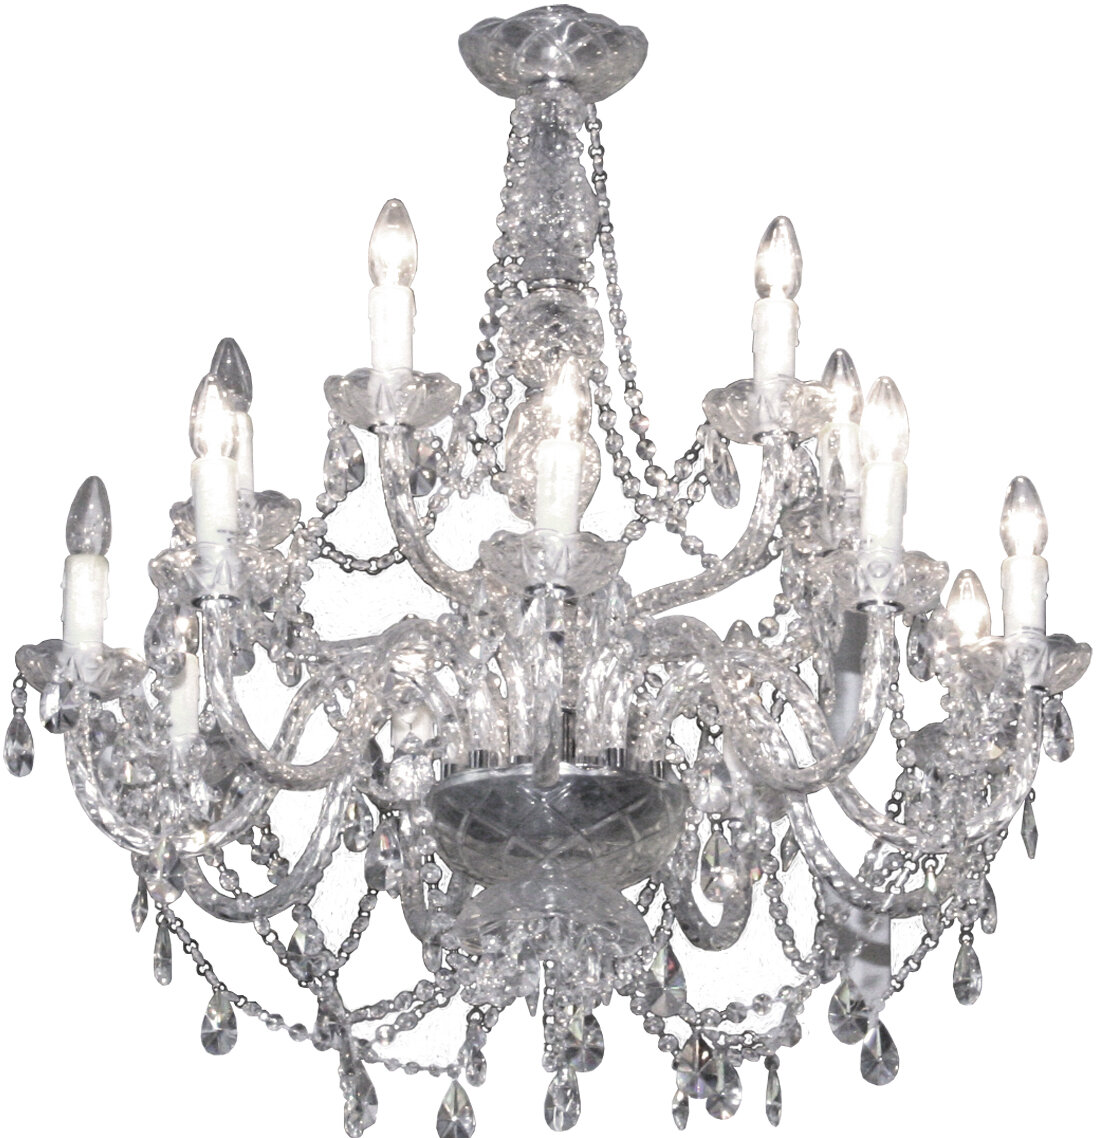 14-Light Candle-Style Chandelier